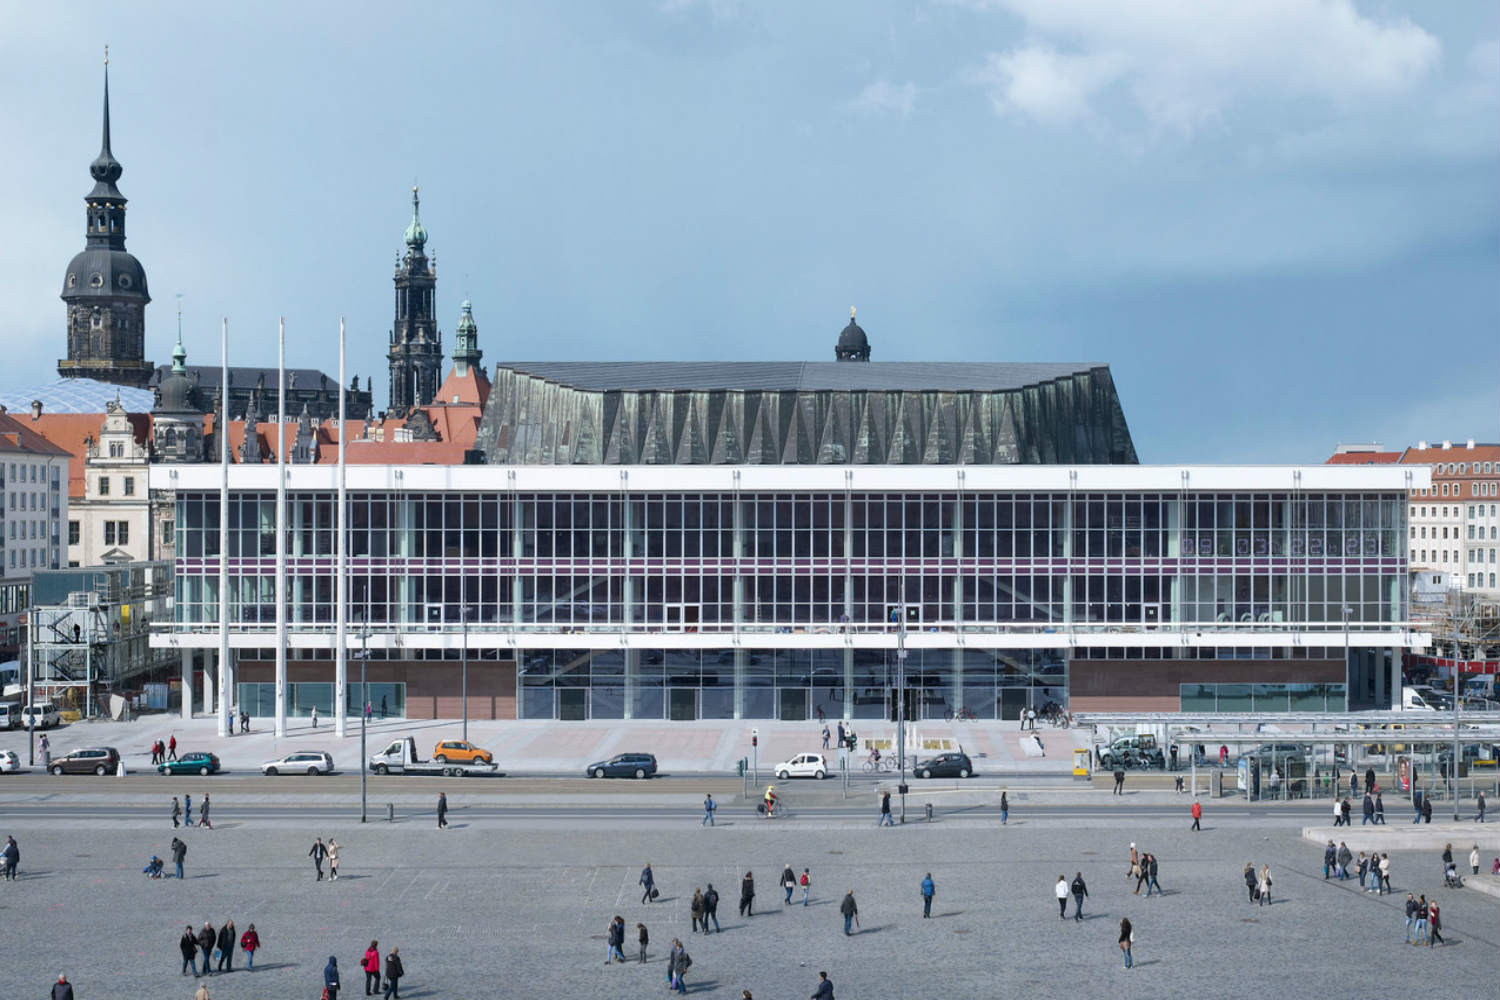 Located in the middle of Dresden's old town, the Kulturpalast highlights with its glass facades and striking roof structure. ADA (WSDG) was the responsible acoustician and consultant for the renovation. Exterior Daylight